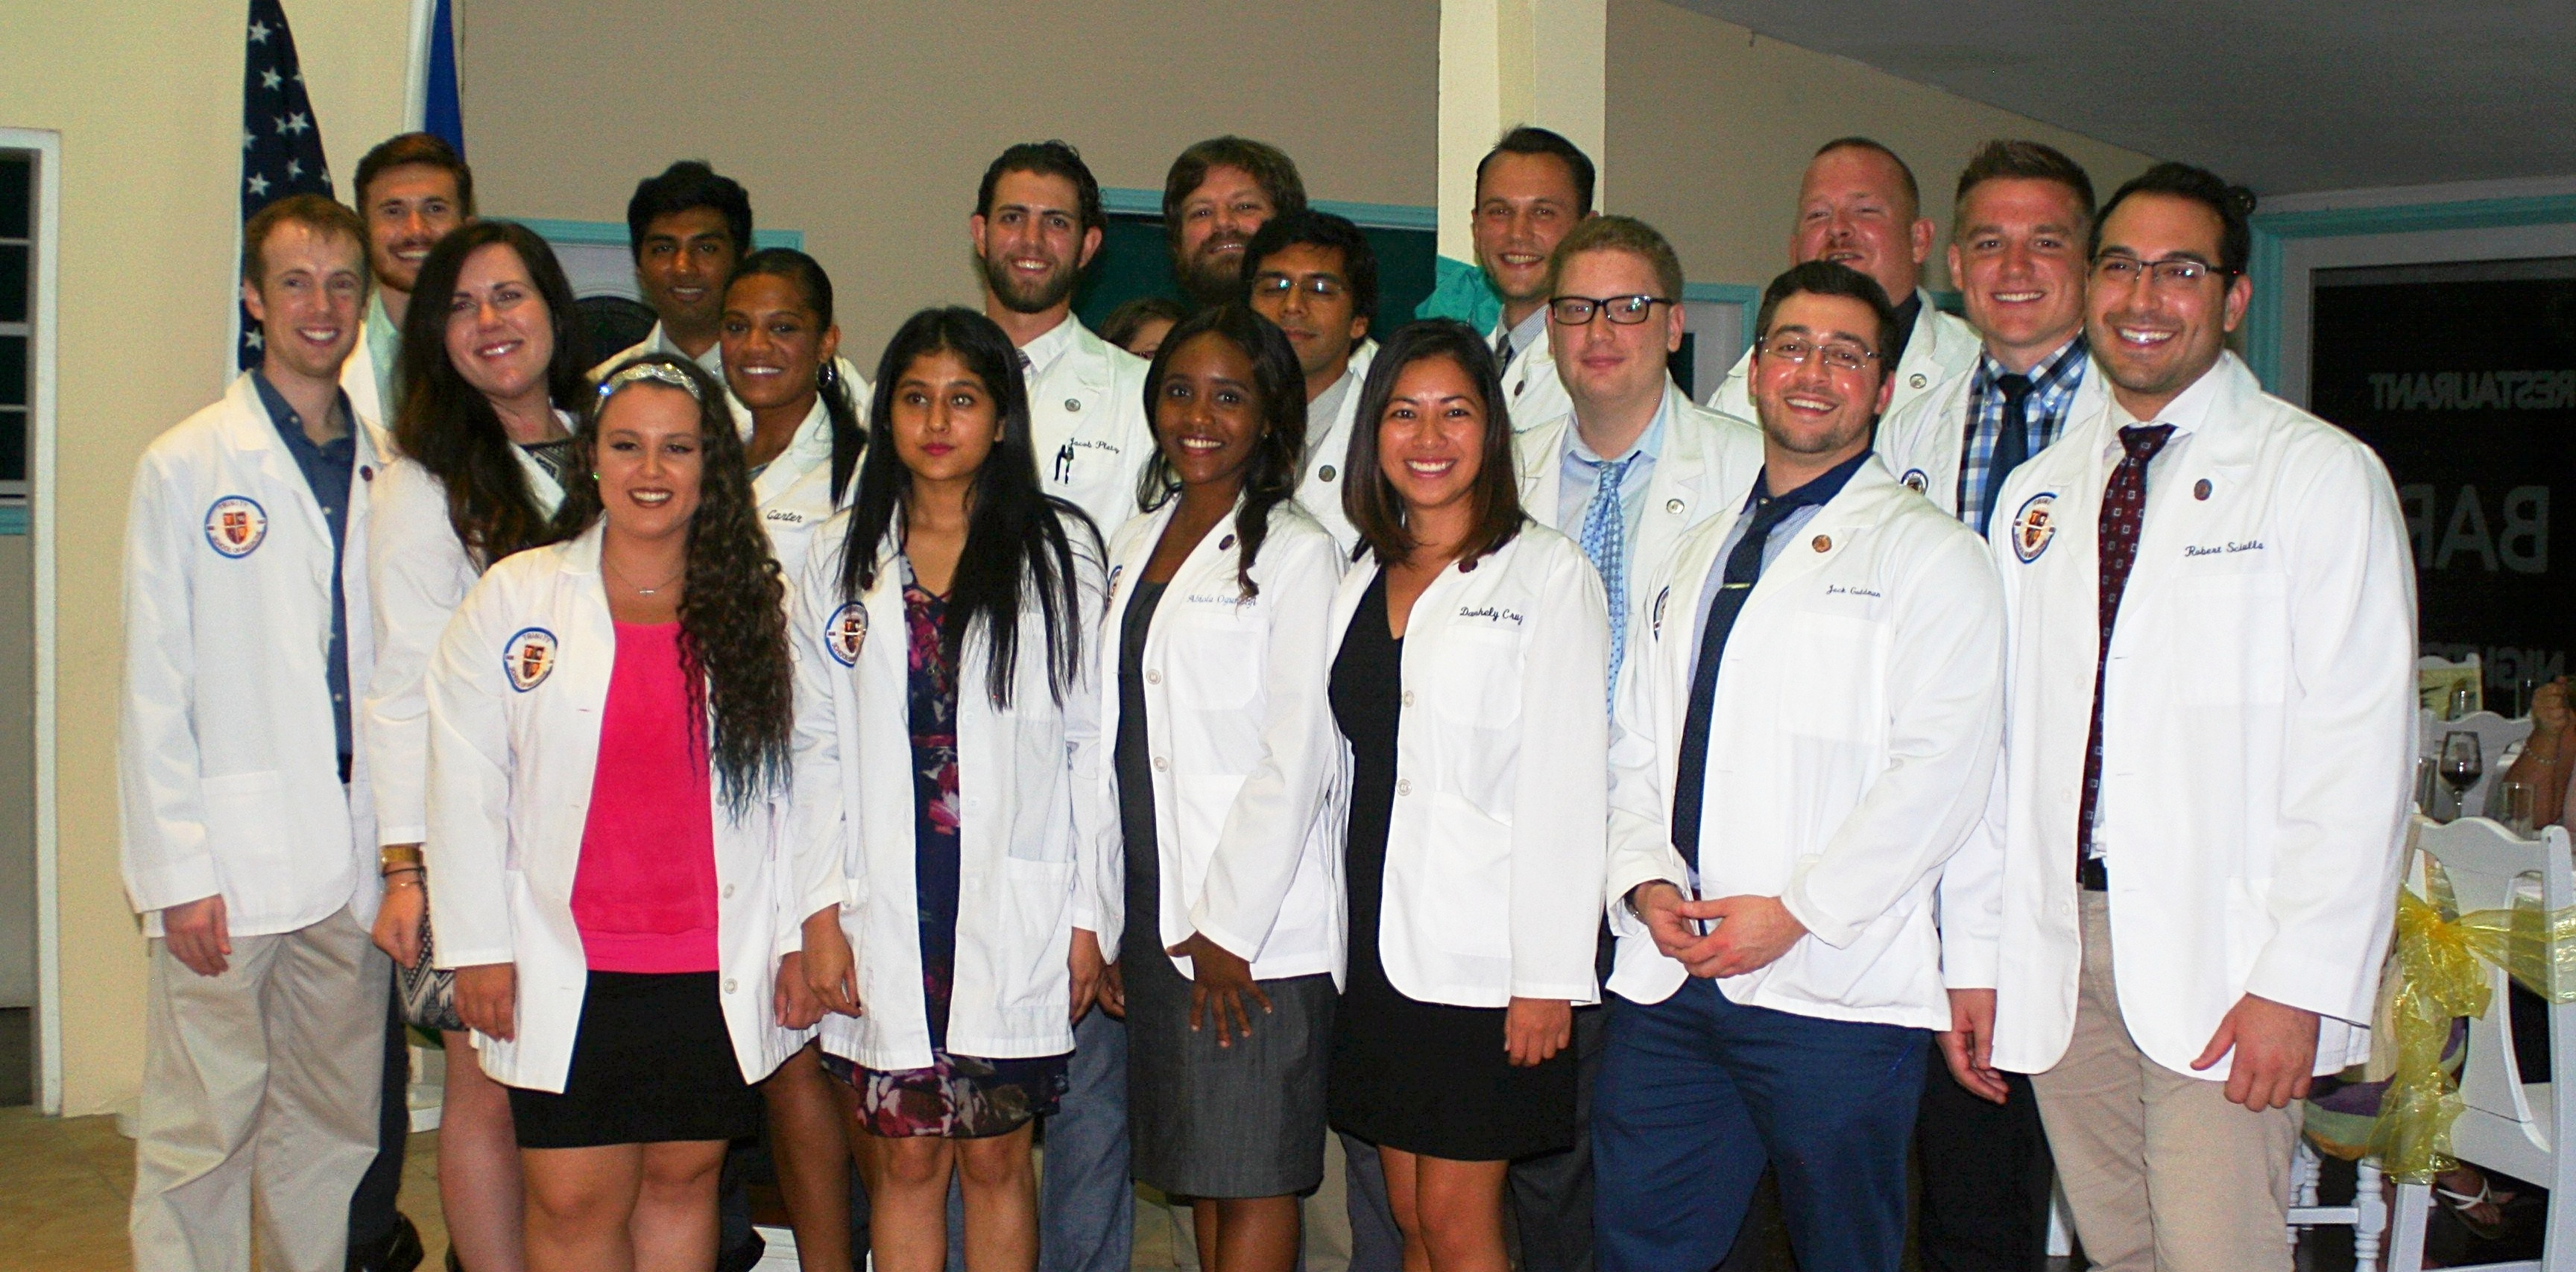 April Fifth Term Ceremony Sends Trinity Coterie off to Clerkship Rotations in Baltimore.